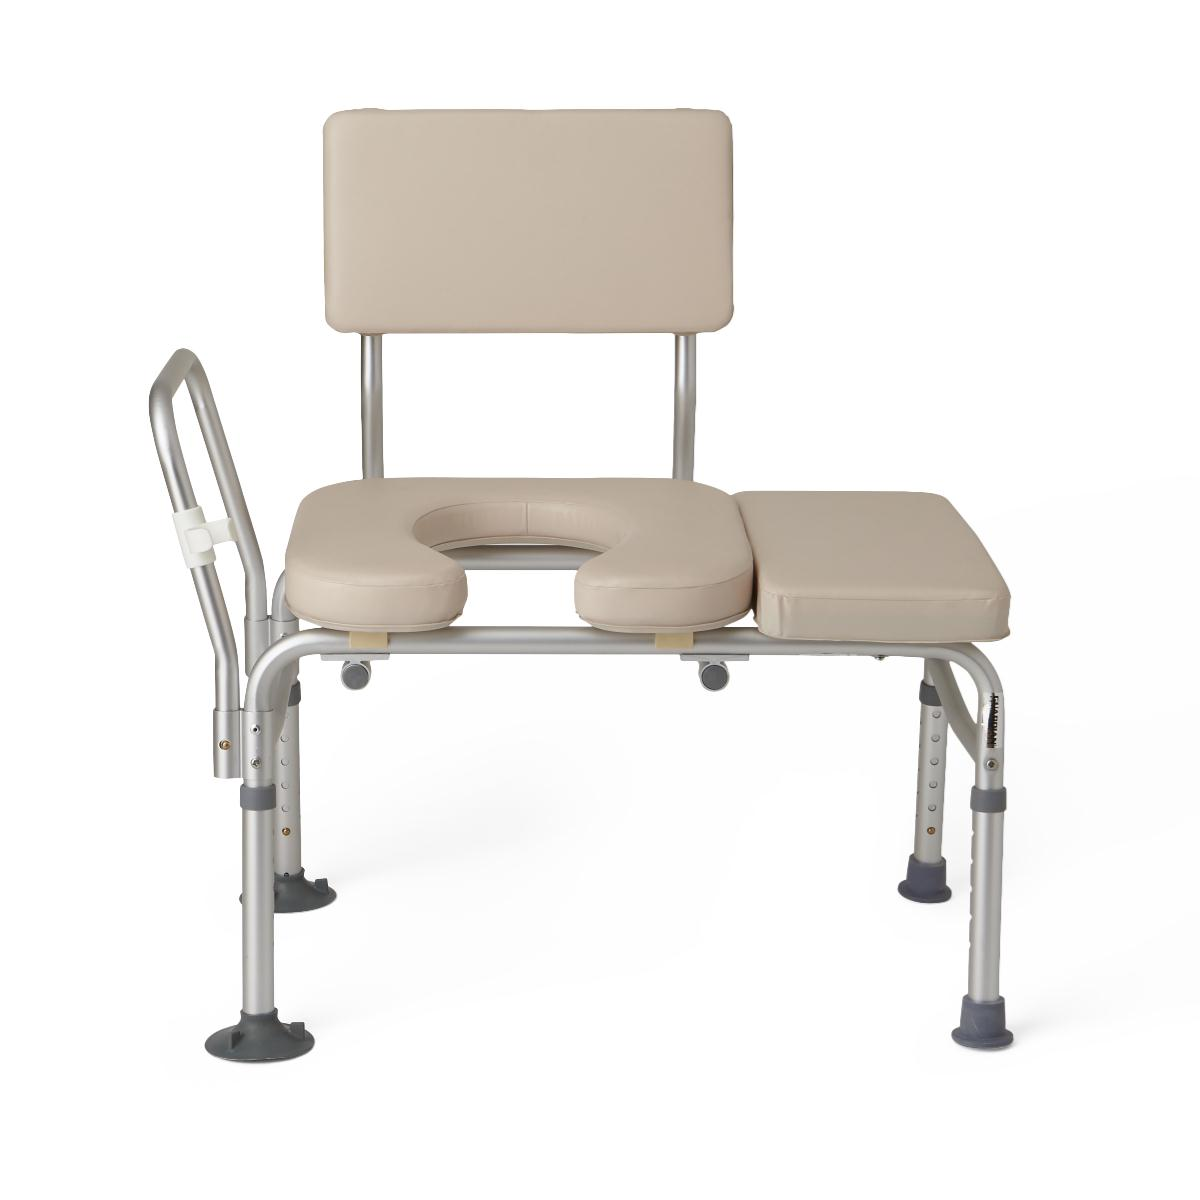 Medline Padded Transfer Bench With Commode Access Abilities